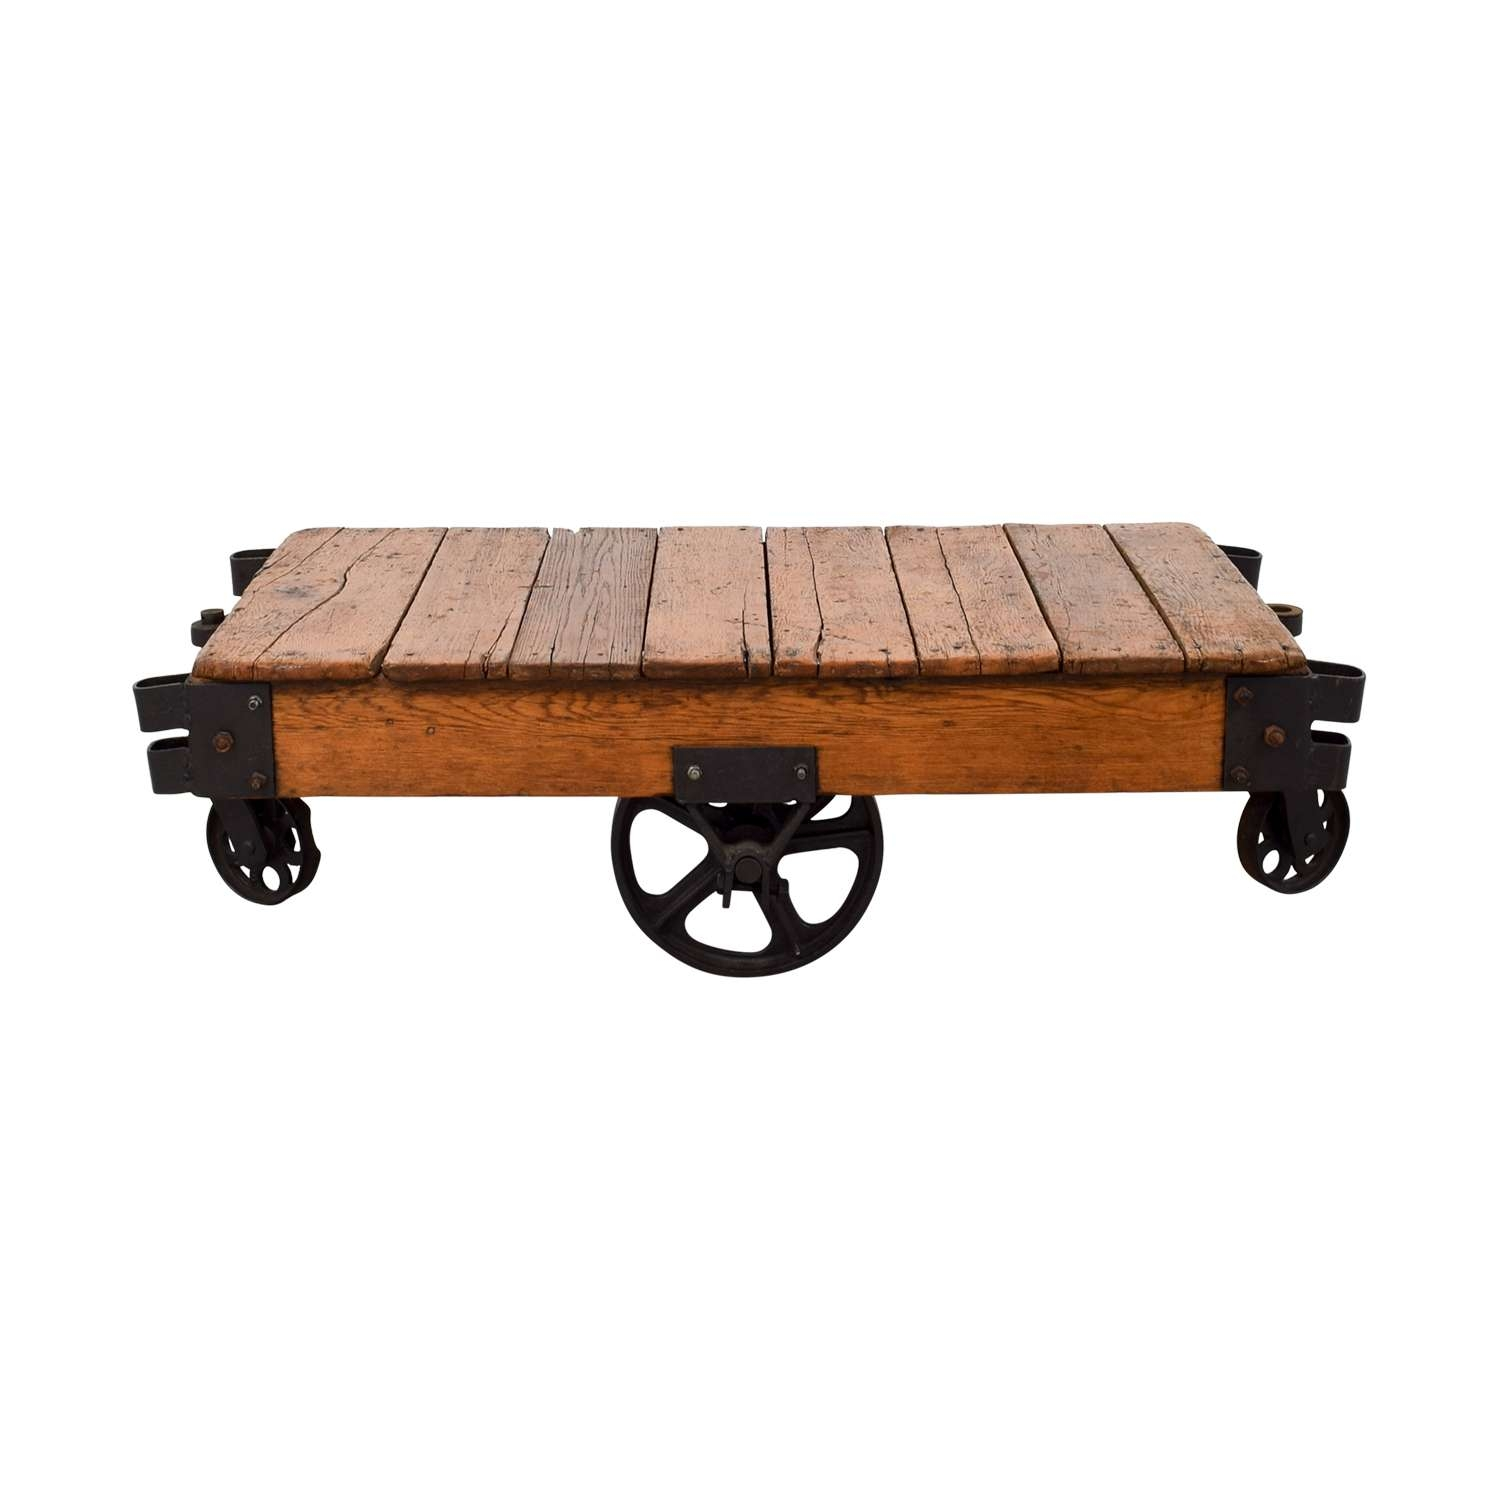 [%most Popular Rustic Coffee Table With Wheels In 49% Off – Restoration Hardware Restoration Hardware Rustic Coffee|49% Off – Restoration Hardware Restoration Hardware Rustic Coffee Inside Current Rustic Coffee Table With Wheels%] (View 10 of 20)